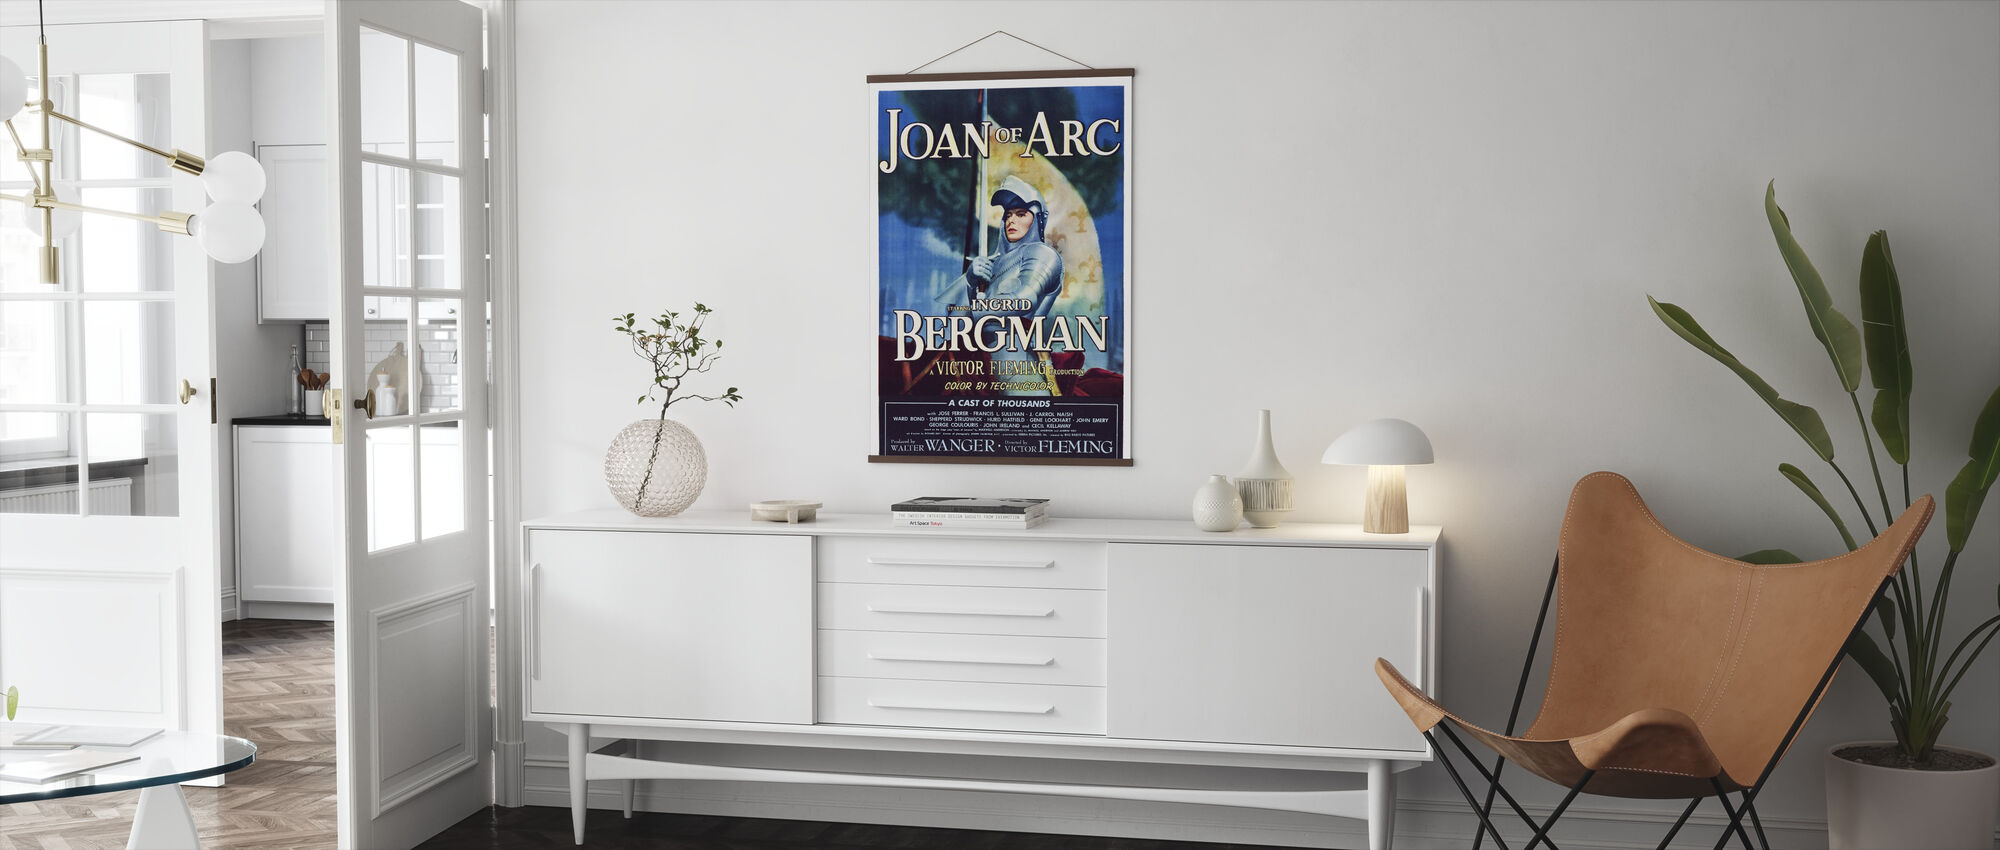 Movie Poster Joan of Arc - Poster - Living Room